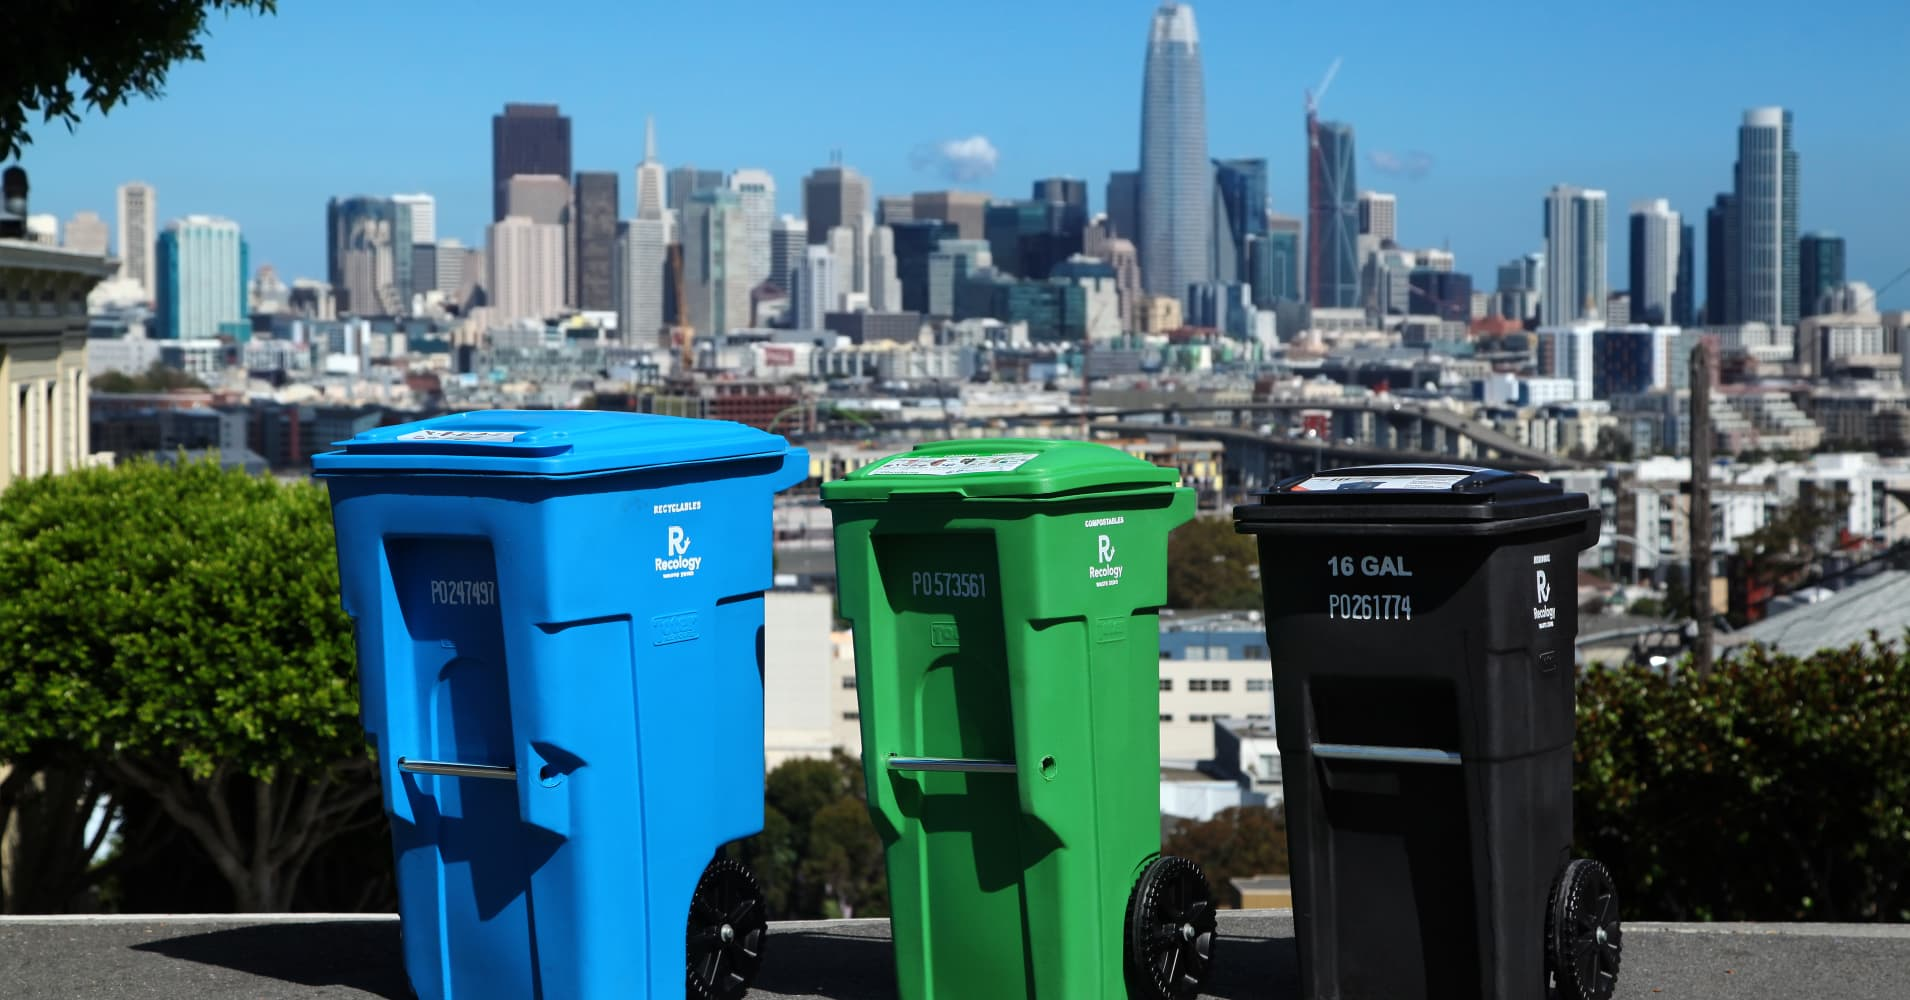 San Francisco leads the world when it comes to waste management